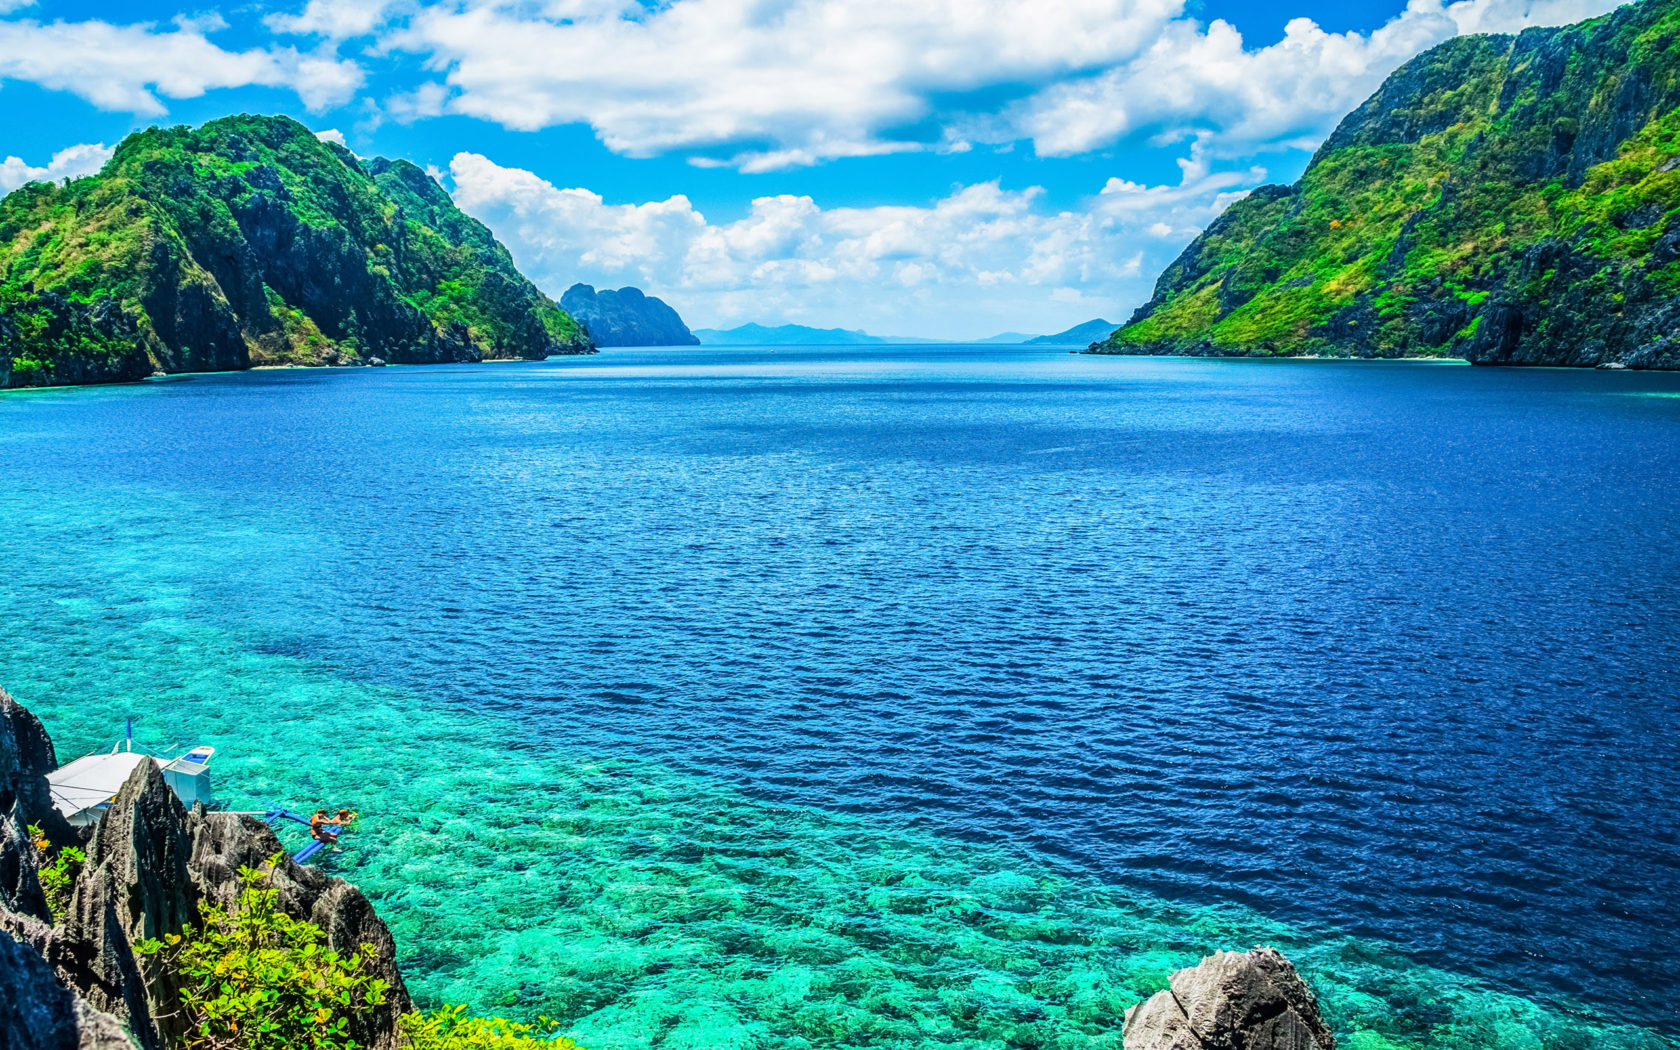 4k Hdr Wallpaper Iphone X Palawan Philippines A Scenic View Of The Sea And Mountain